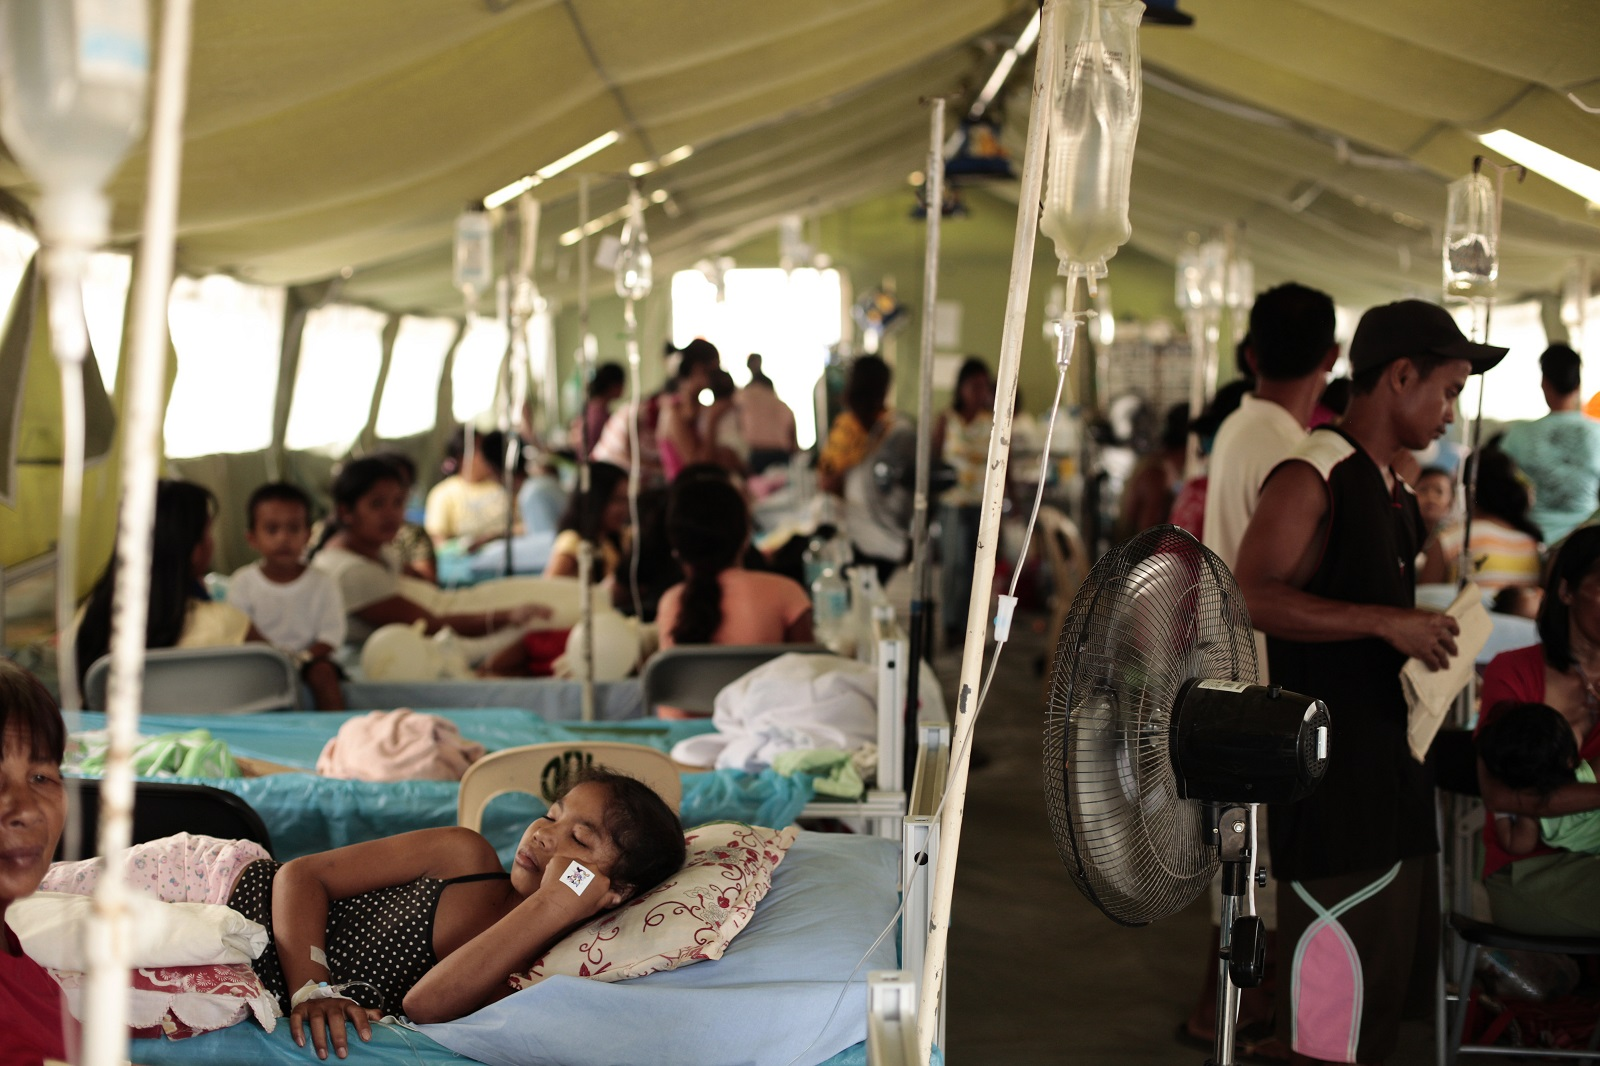 Ten threats to Global Health in 2019 - Brand Spur